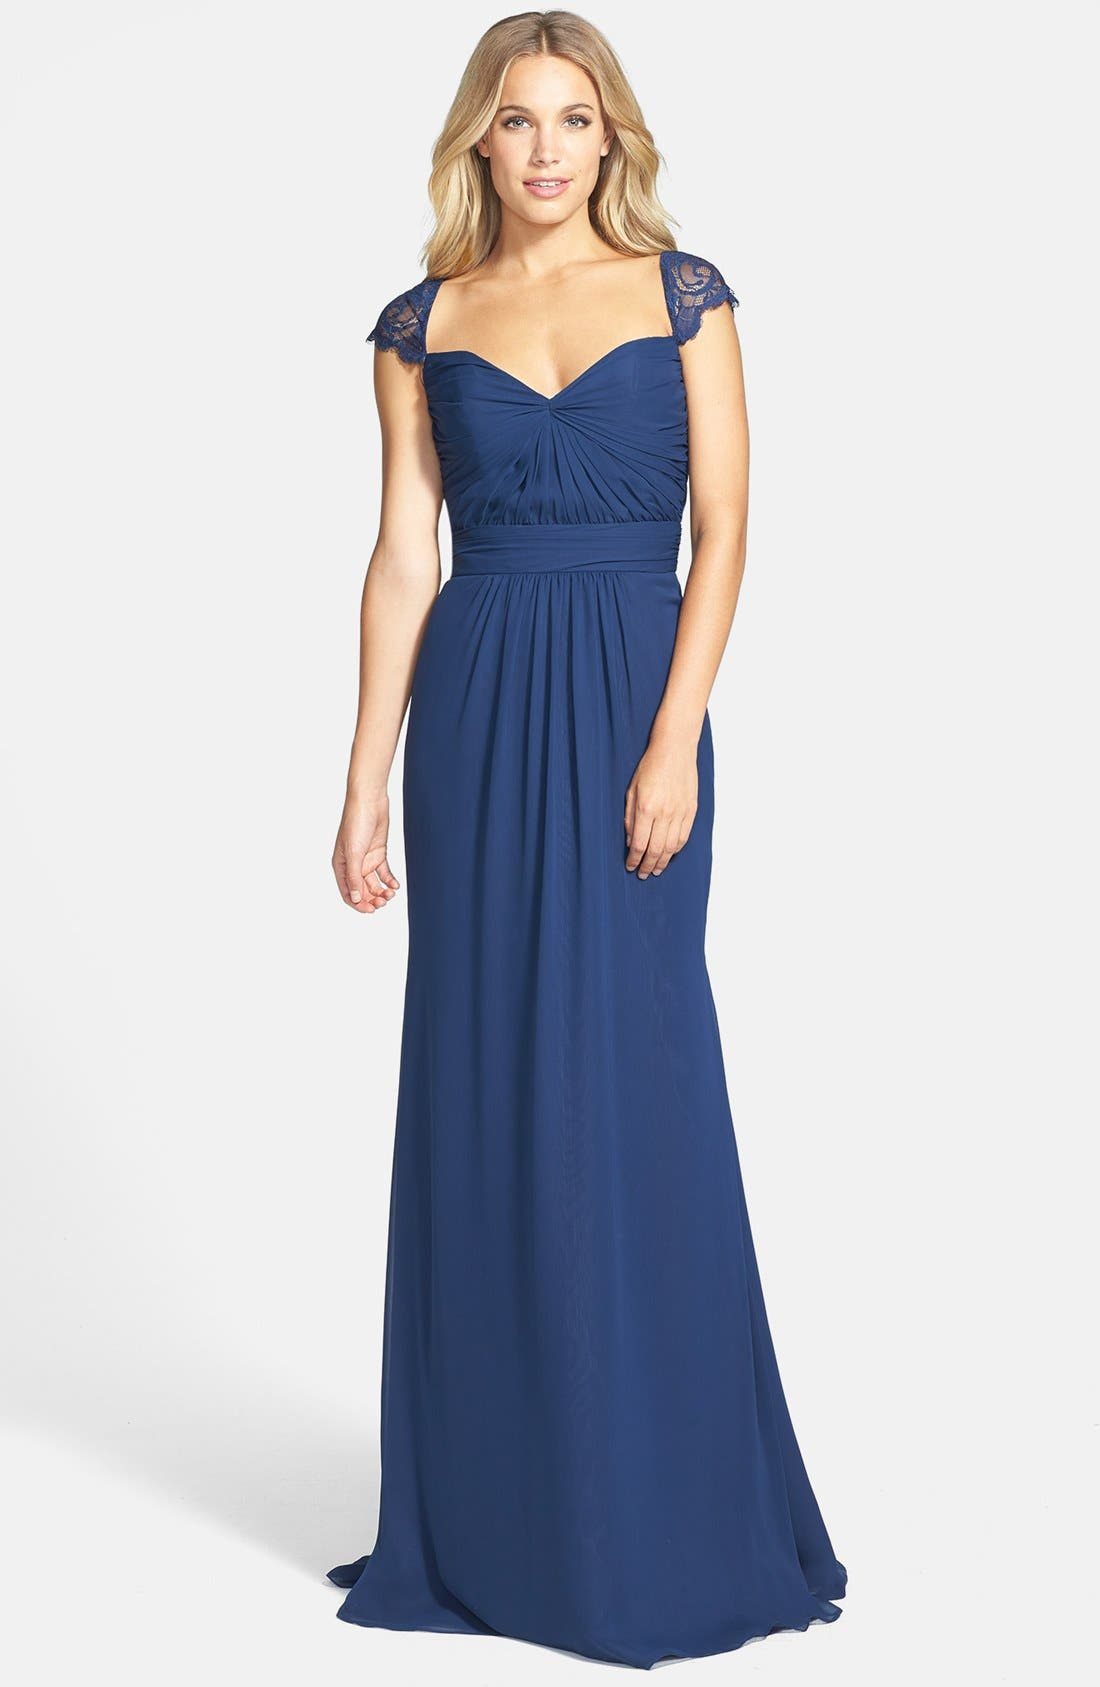 Main Image - Jim Hjelm Occasions 'Luminescent' Lace Sleeve Chiffon Gown